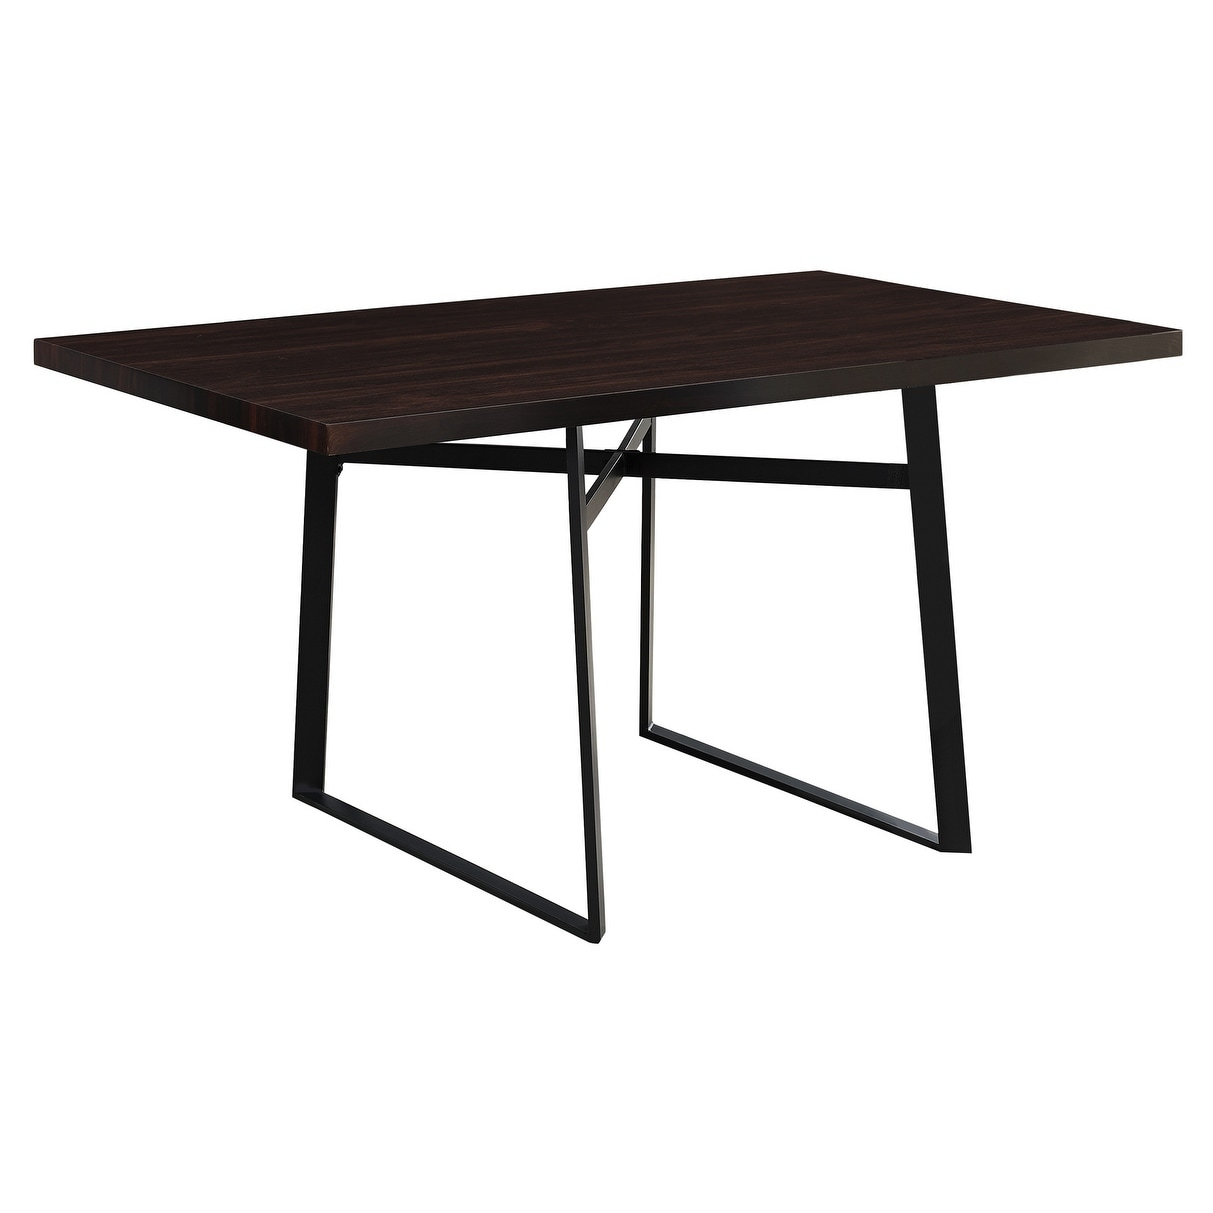 "Monarch Cappuccino Black Metal Dining Table (36"" x 60"") (..."